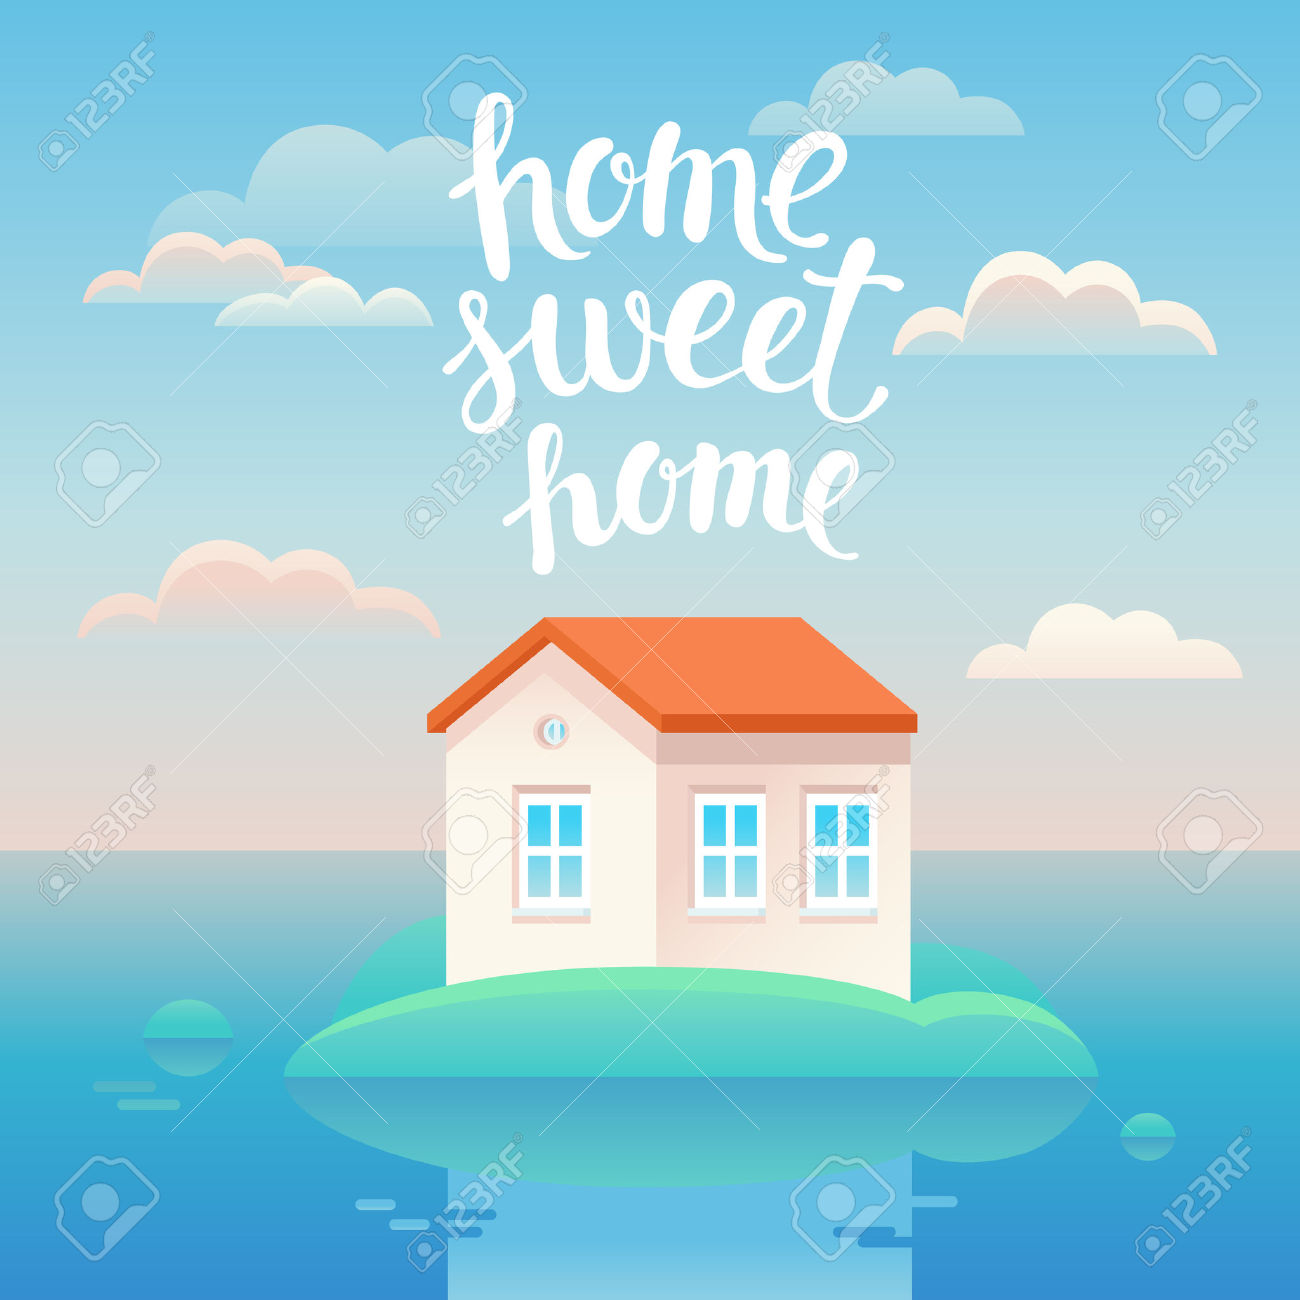 Home sweet home clipart house clip art royalty free download Home sweet home clipart house - ClipartFest clip art royalty free download